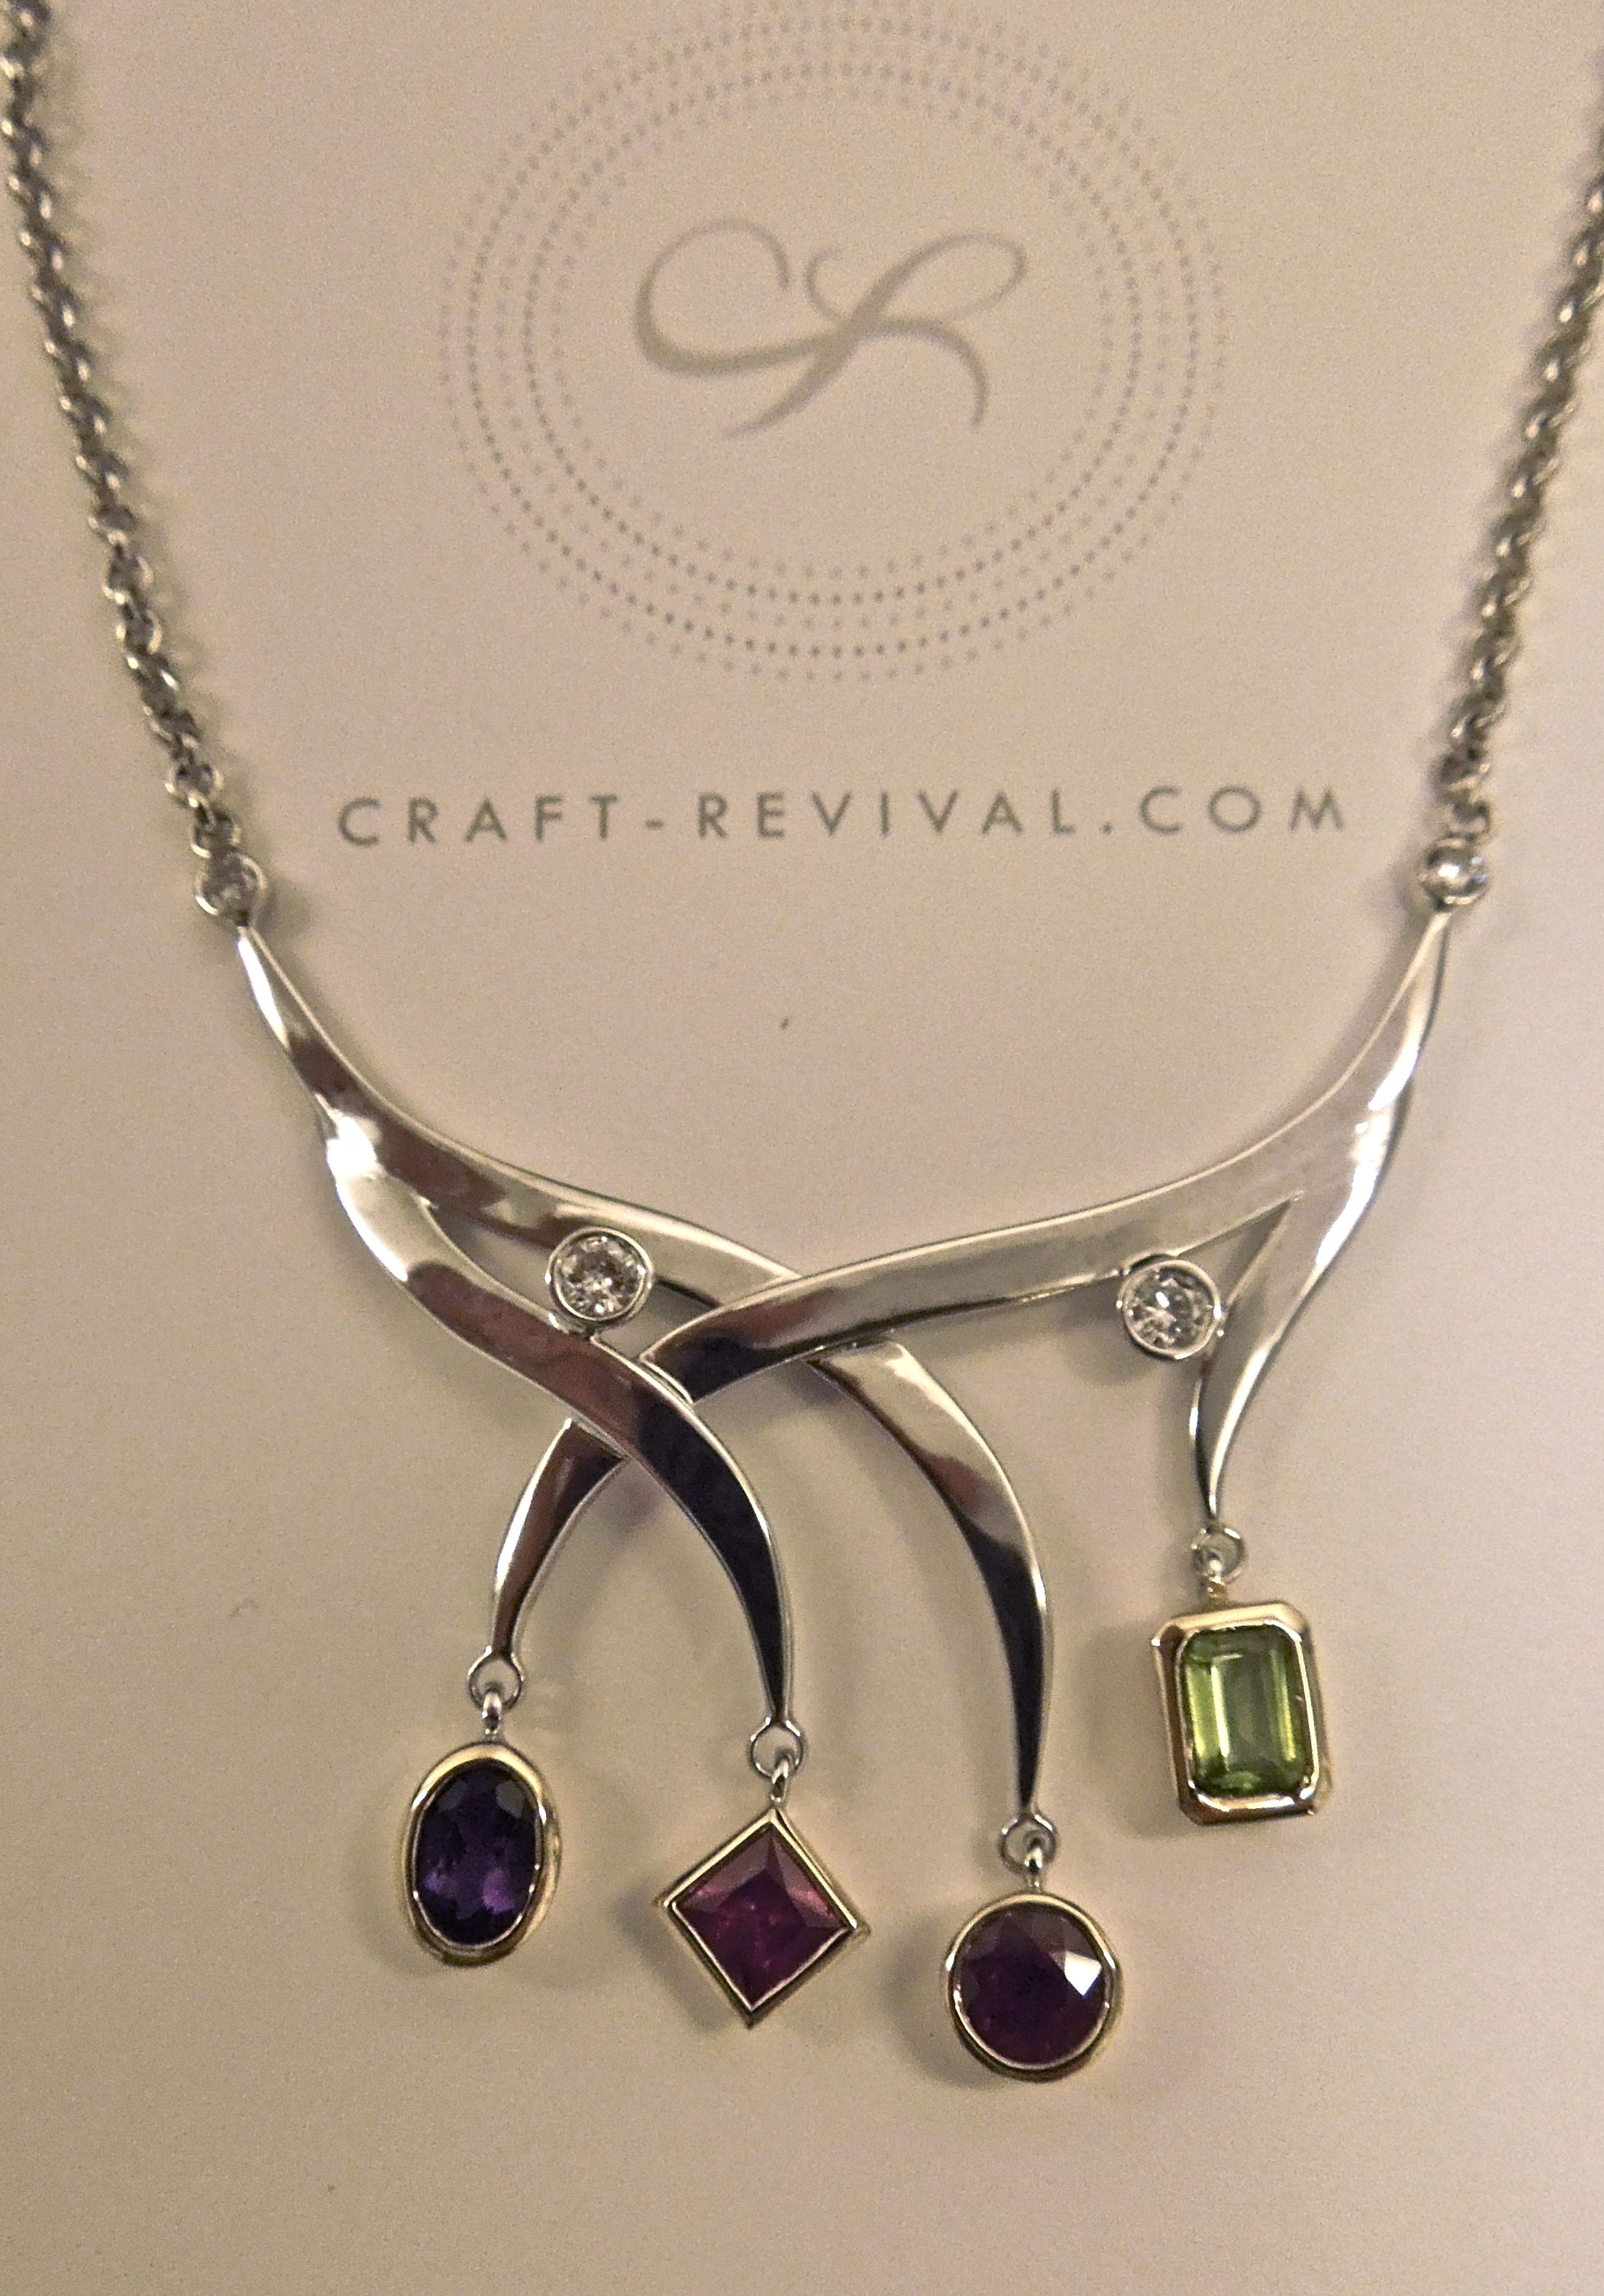 Colorful uniquely crafted necklace by Craft-Revival Jewelers